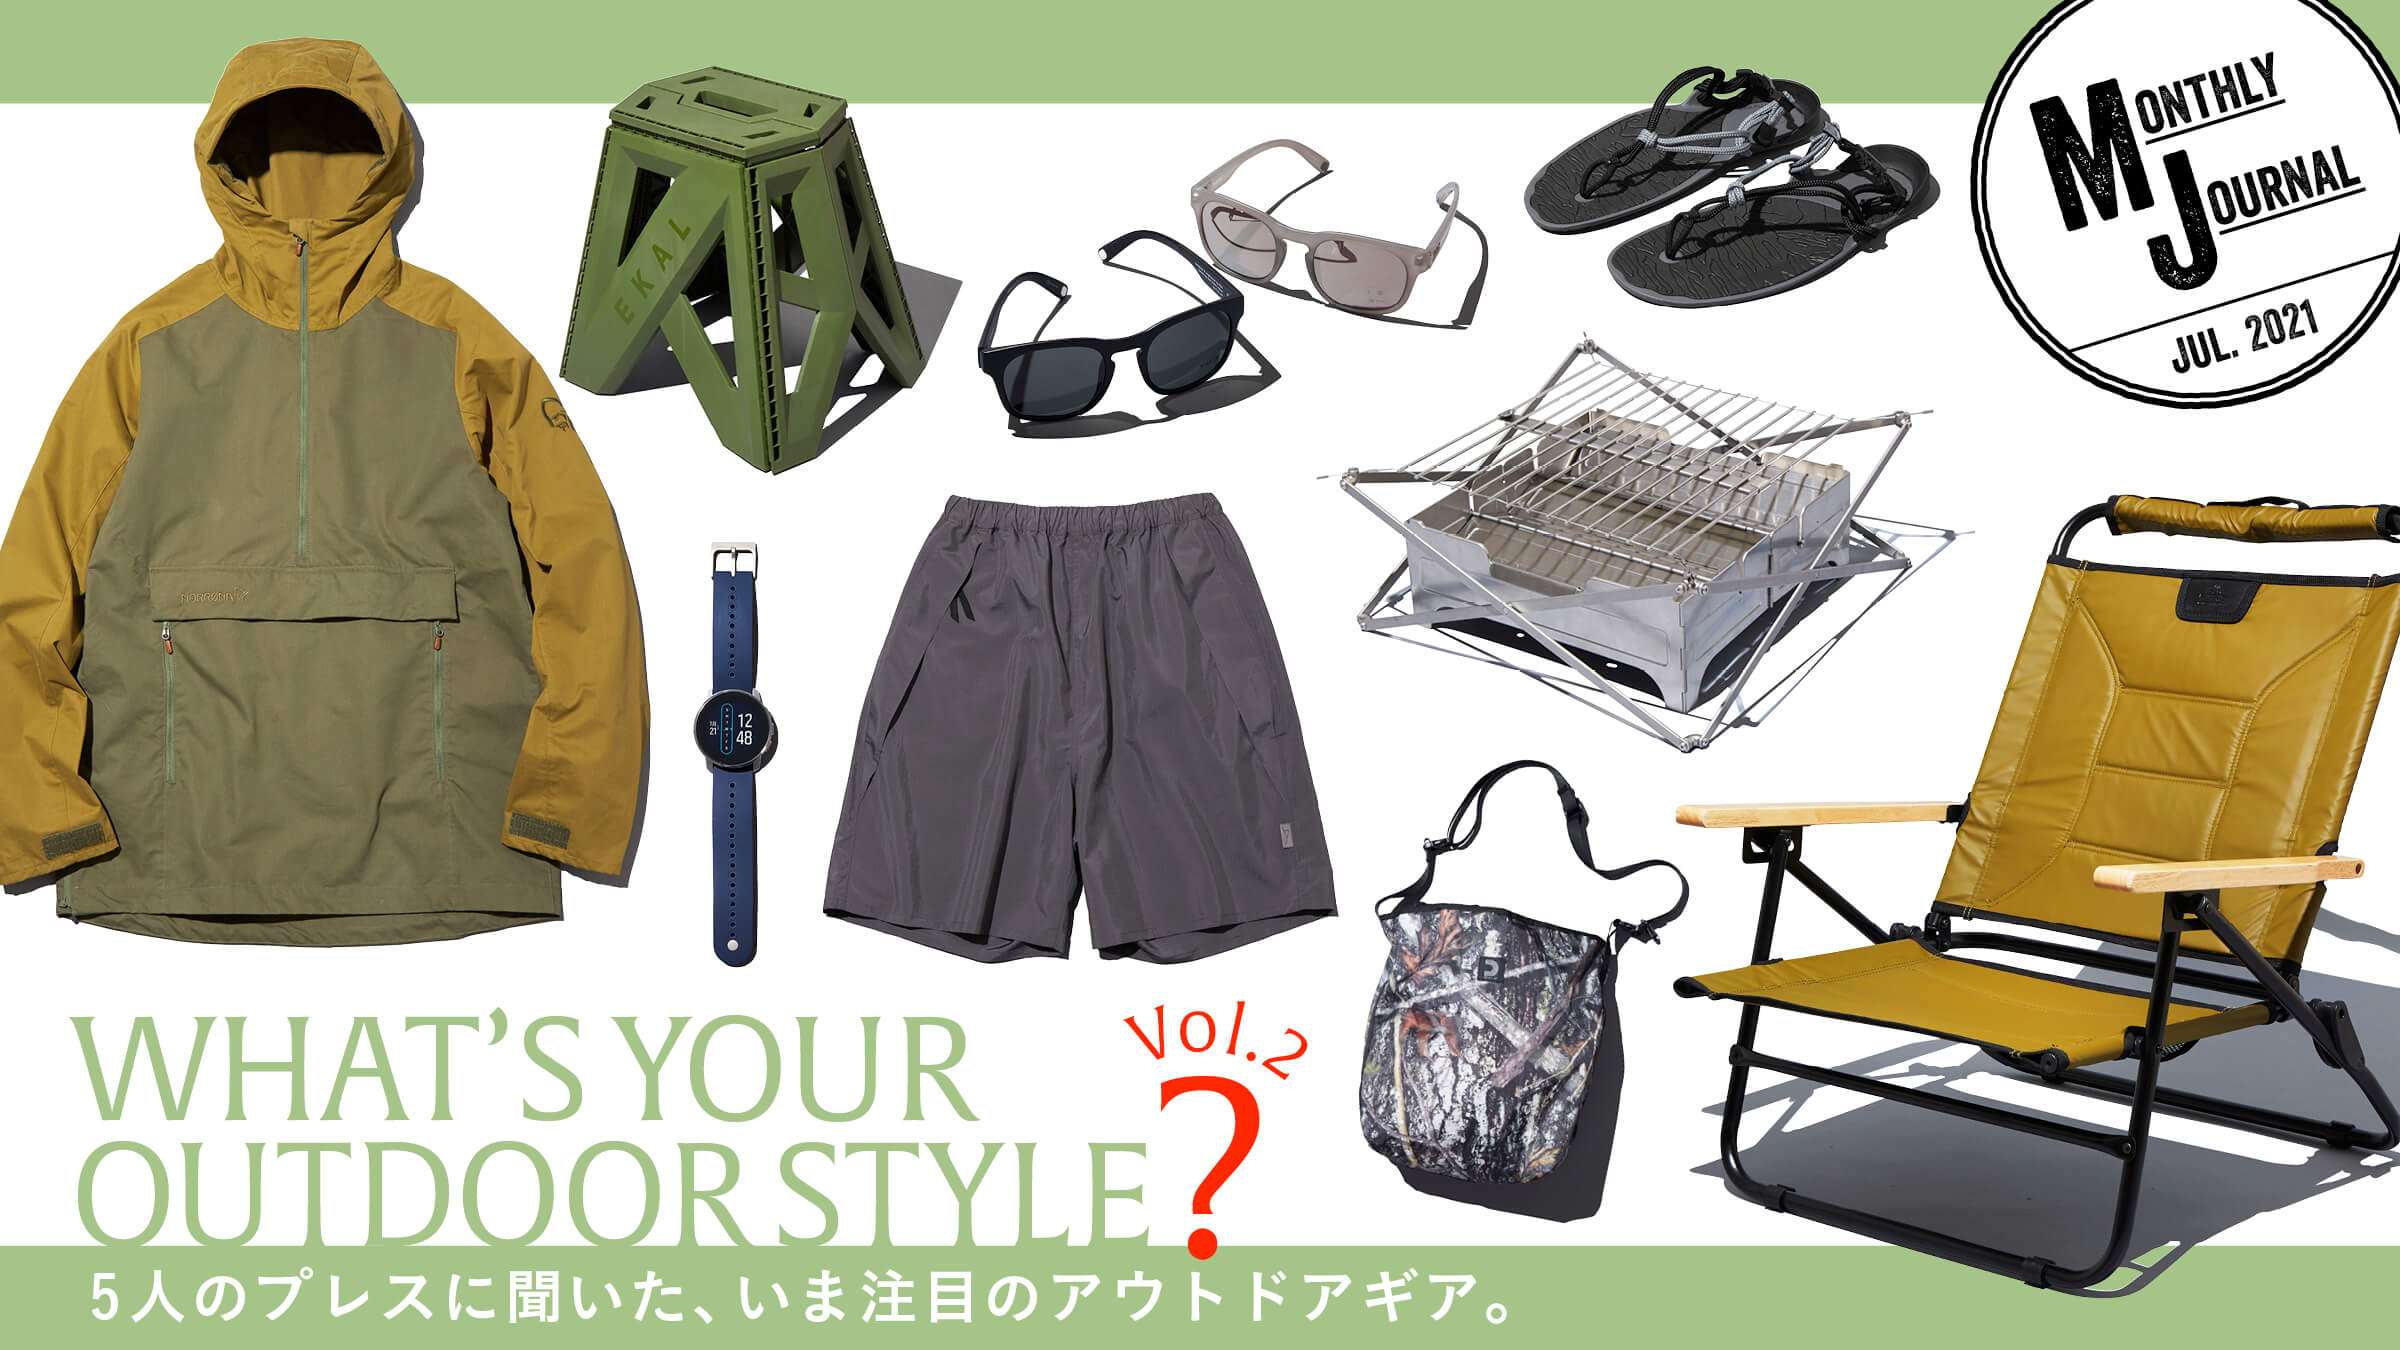 WHAT'S YOUR OUTDOOR STYLE? vol.2 5人のプレスに聞いた、いま注目のアウトドアギア。